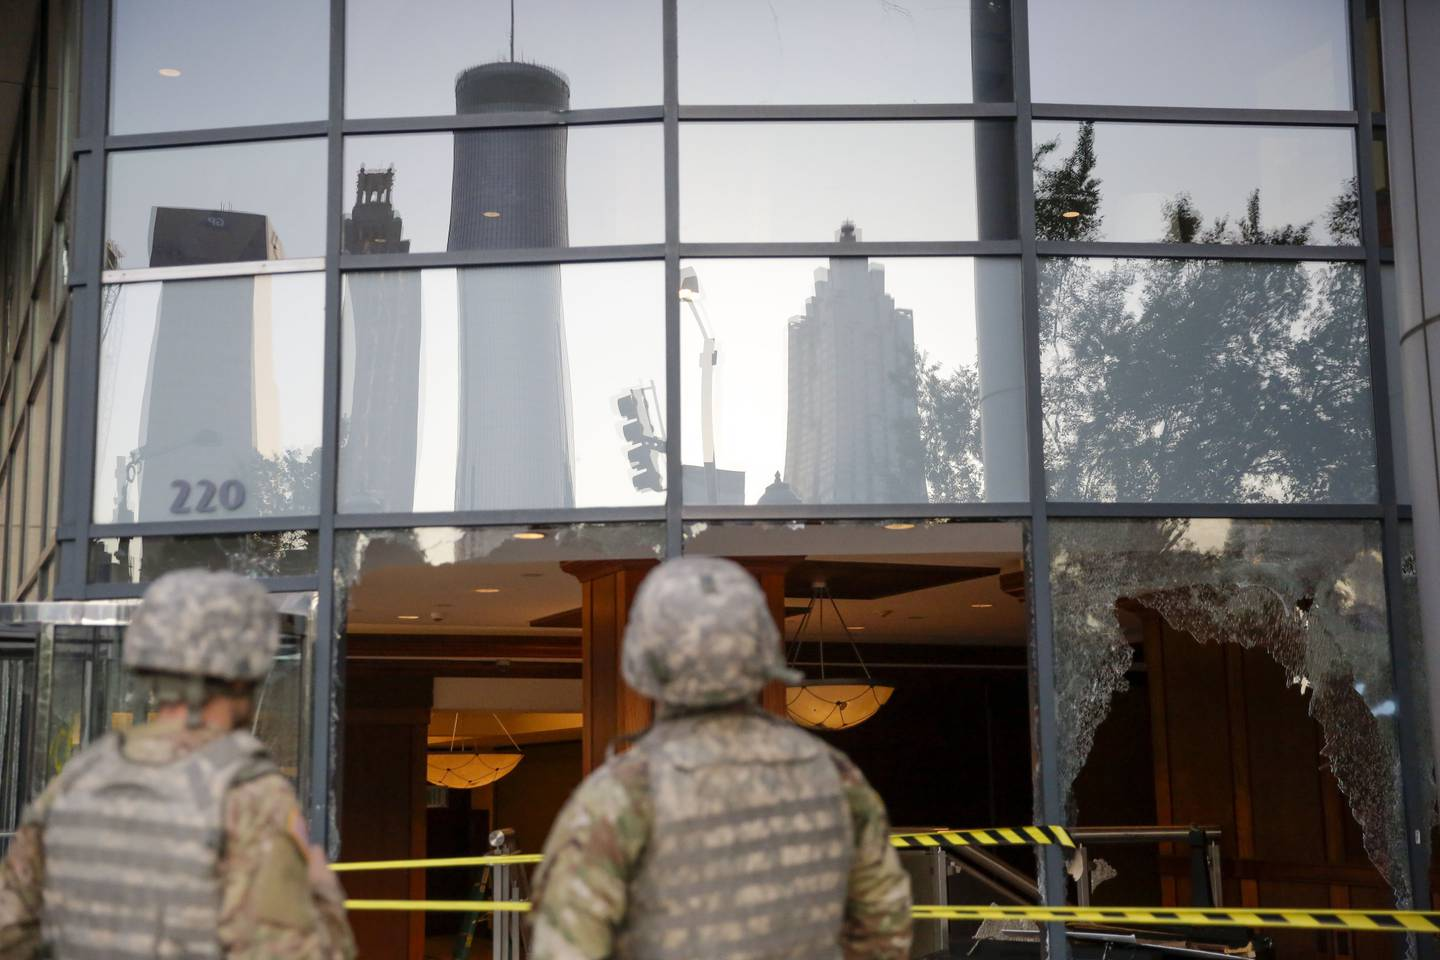 The National Guard looks at the damage done to downtown Atlanta in the aftermath of a demonstration against police violence on Saturday, May 30, 2020, in Atlanta.